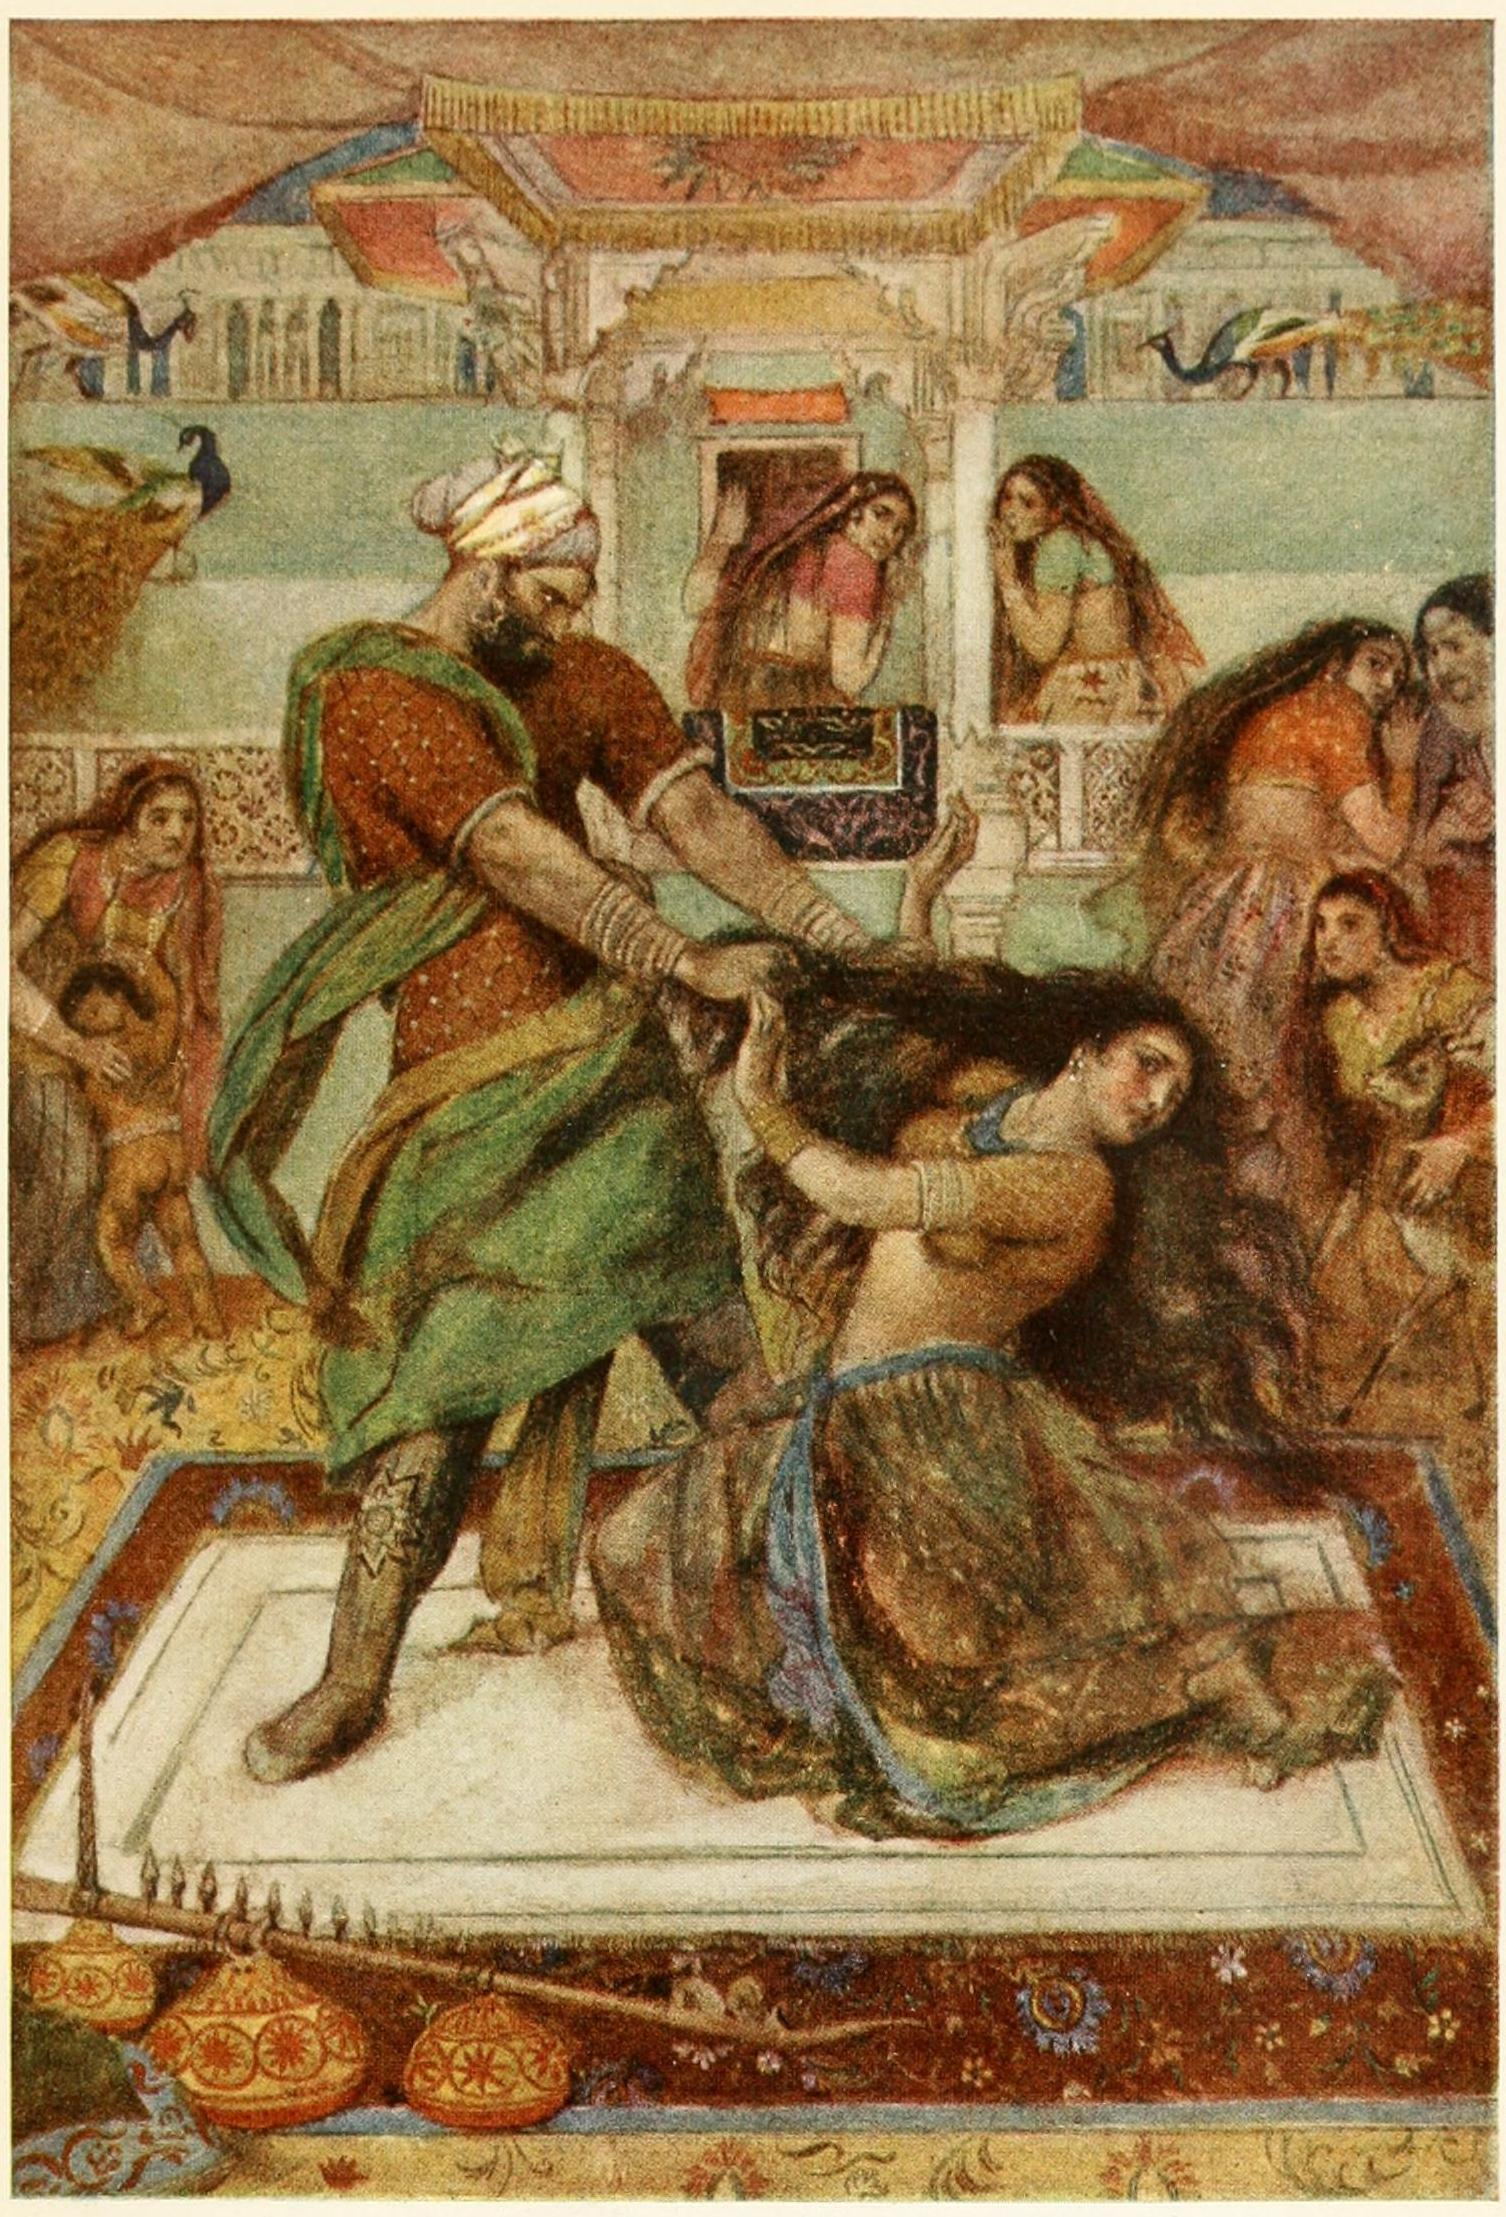 Draupadi dragged by her hair (Image from Wikimedia Commons).